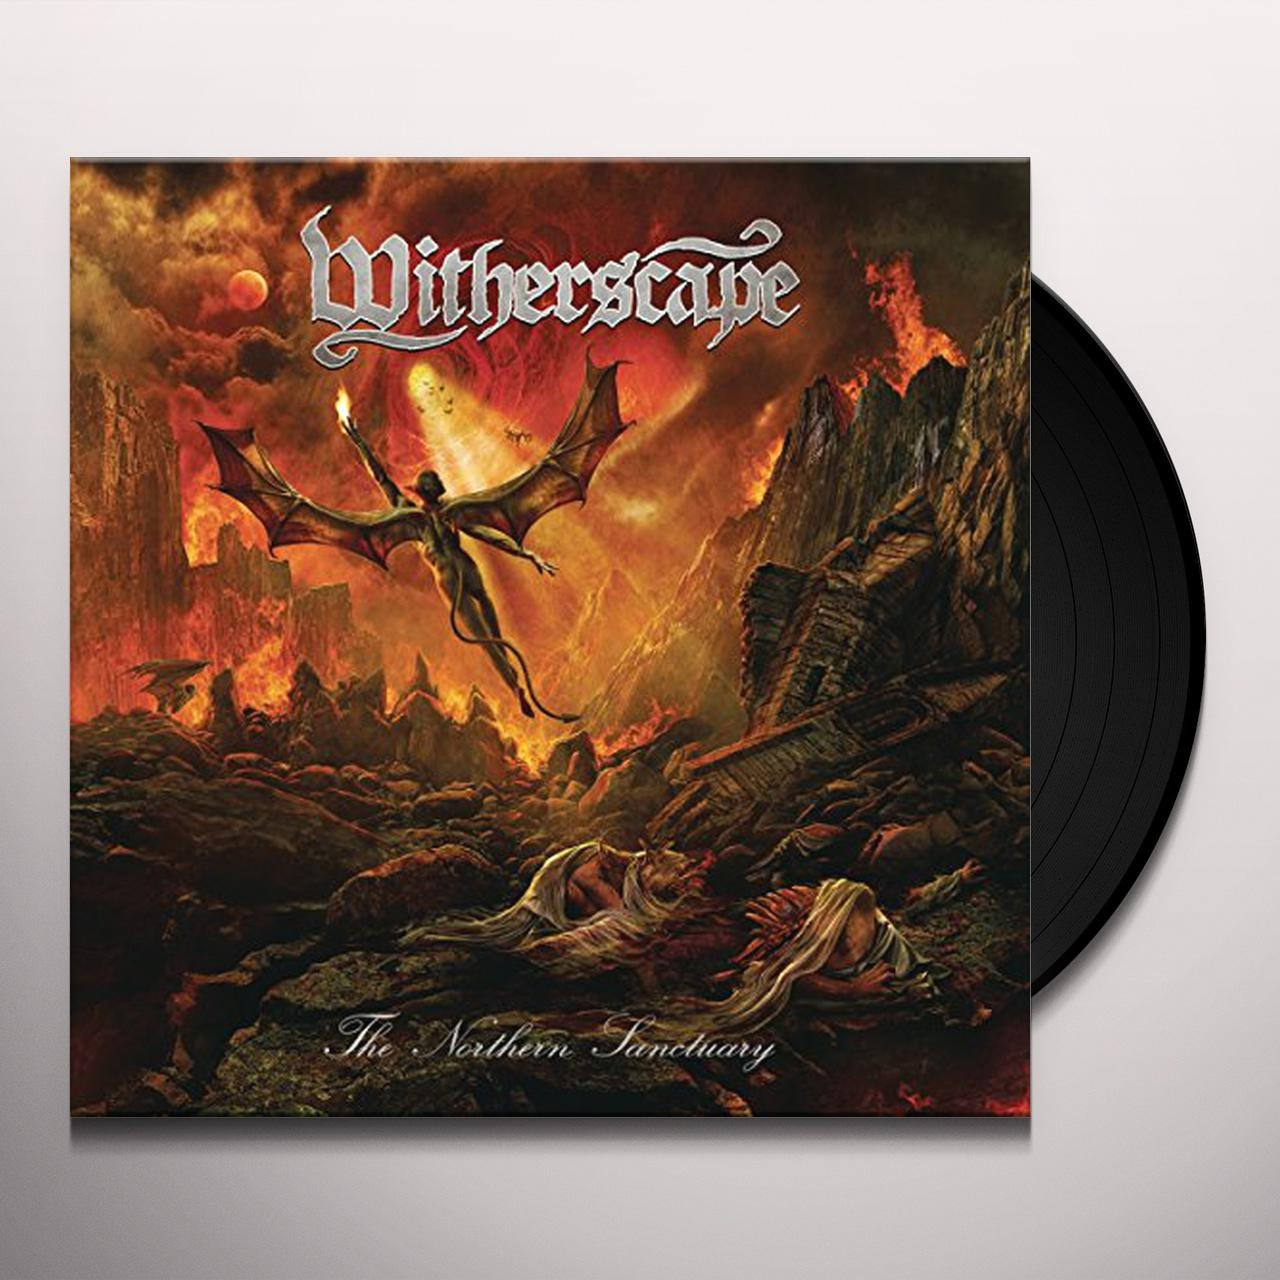 Witherscrape - The Northern Santuary (Gatefold LP + CD & Poster)